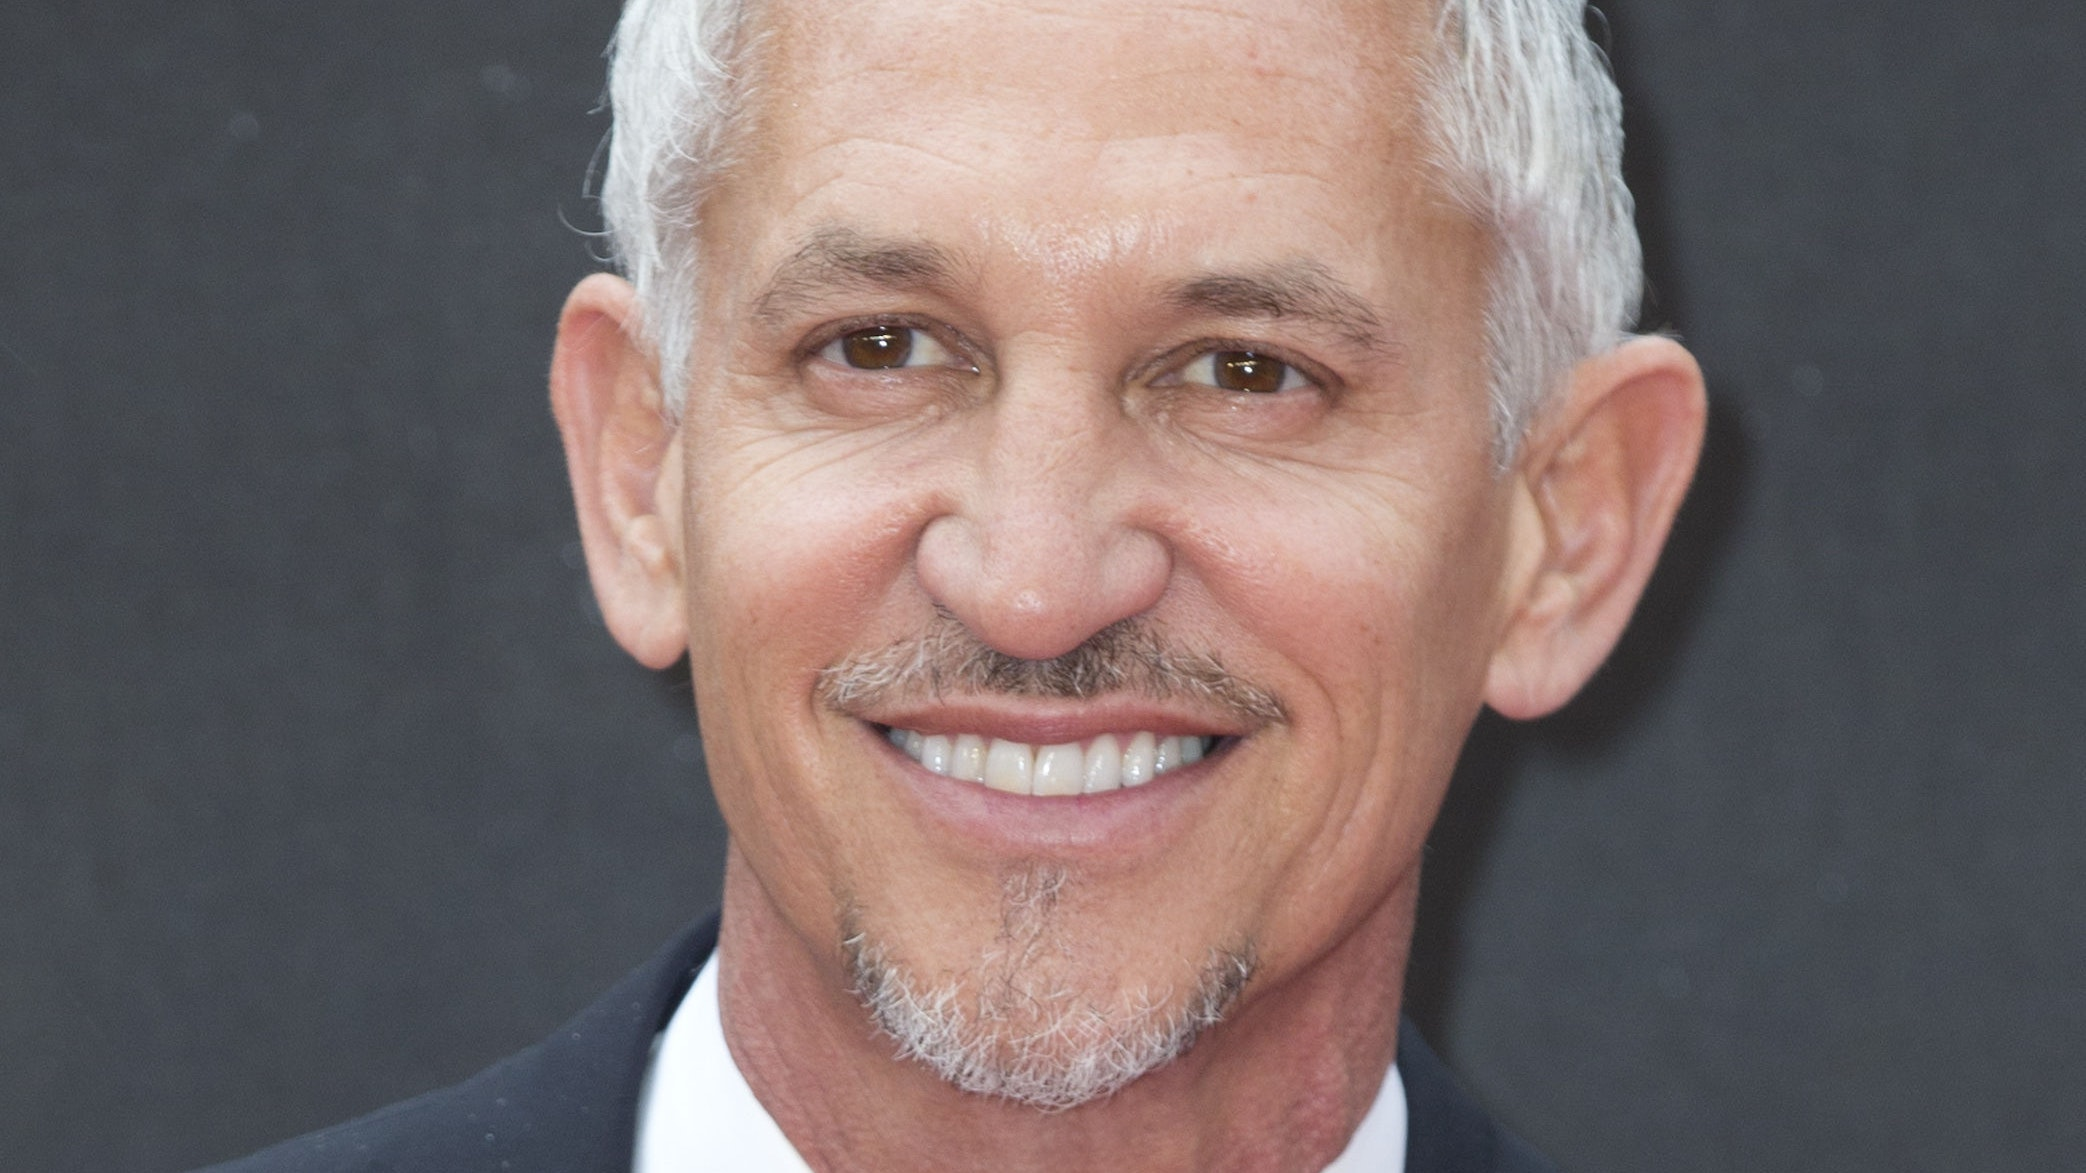 Gary Lineker is backing a campaign for a second Brexit referendum